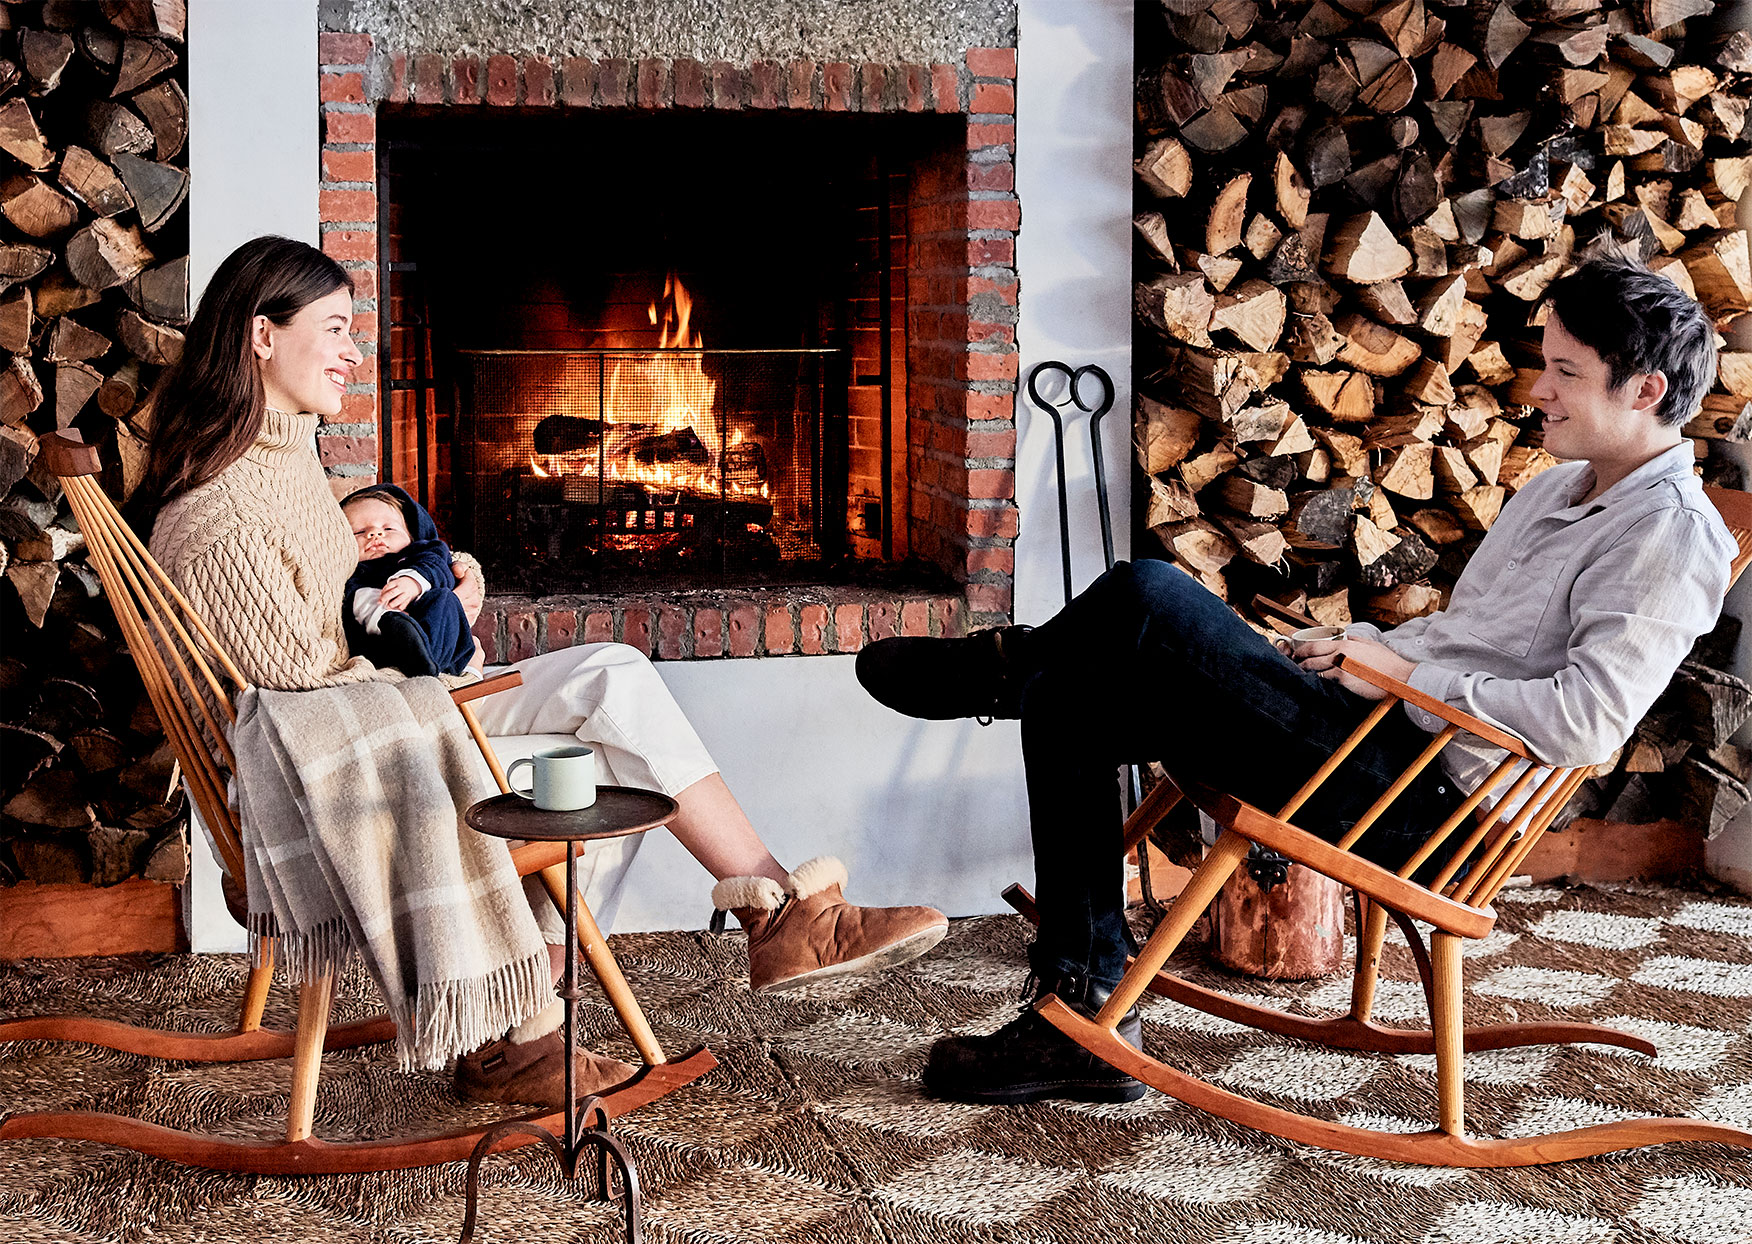 couple sitting on rocking chairs by fireplace